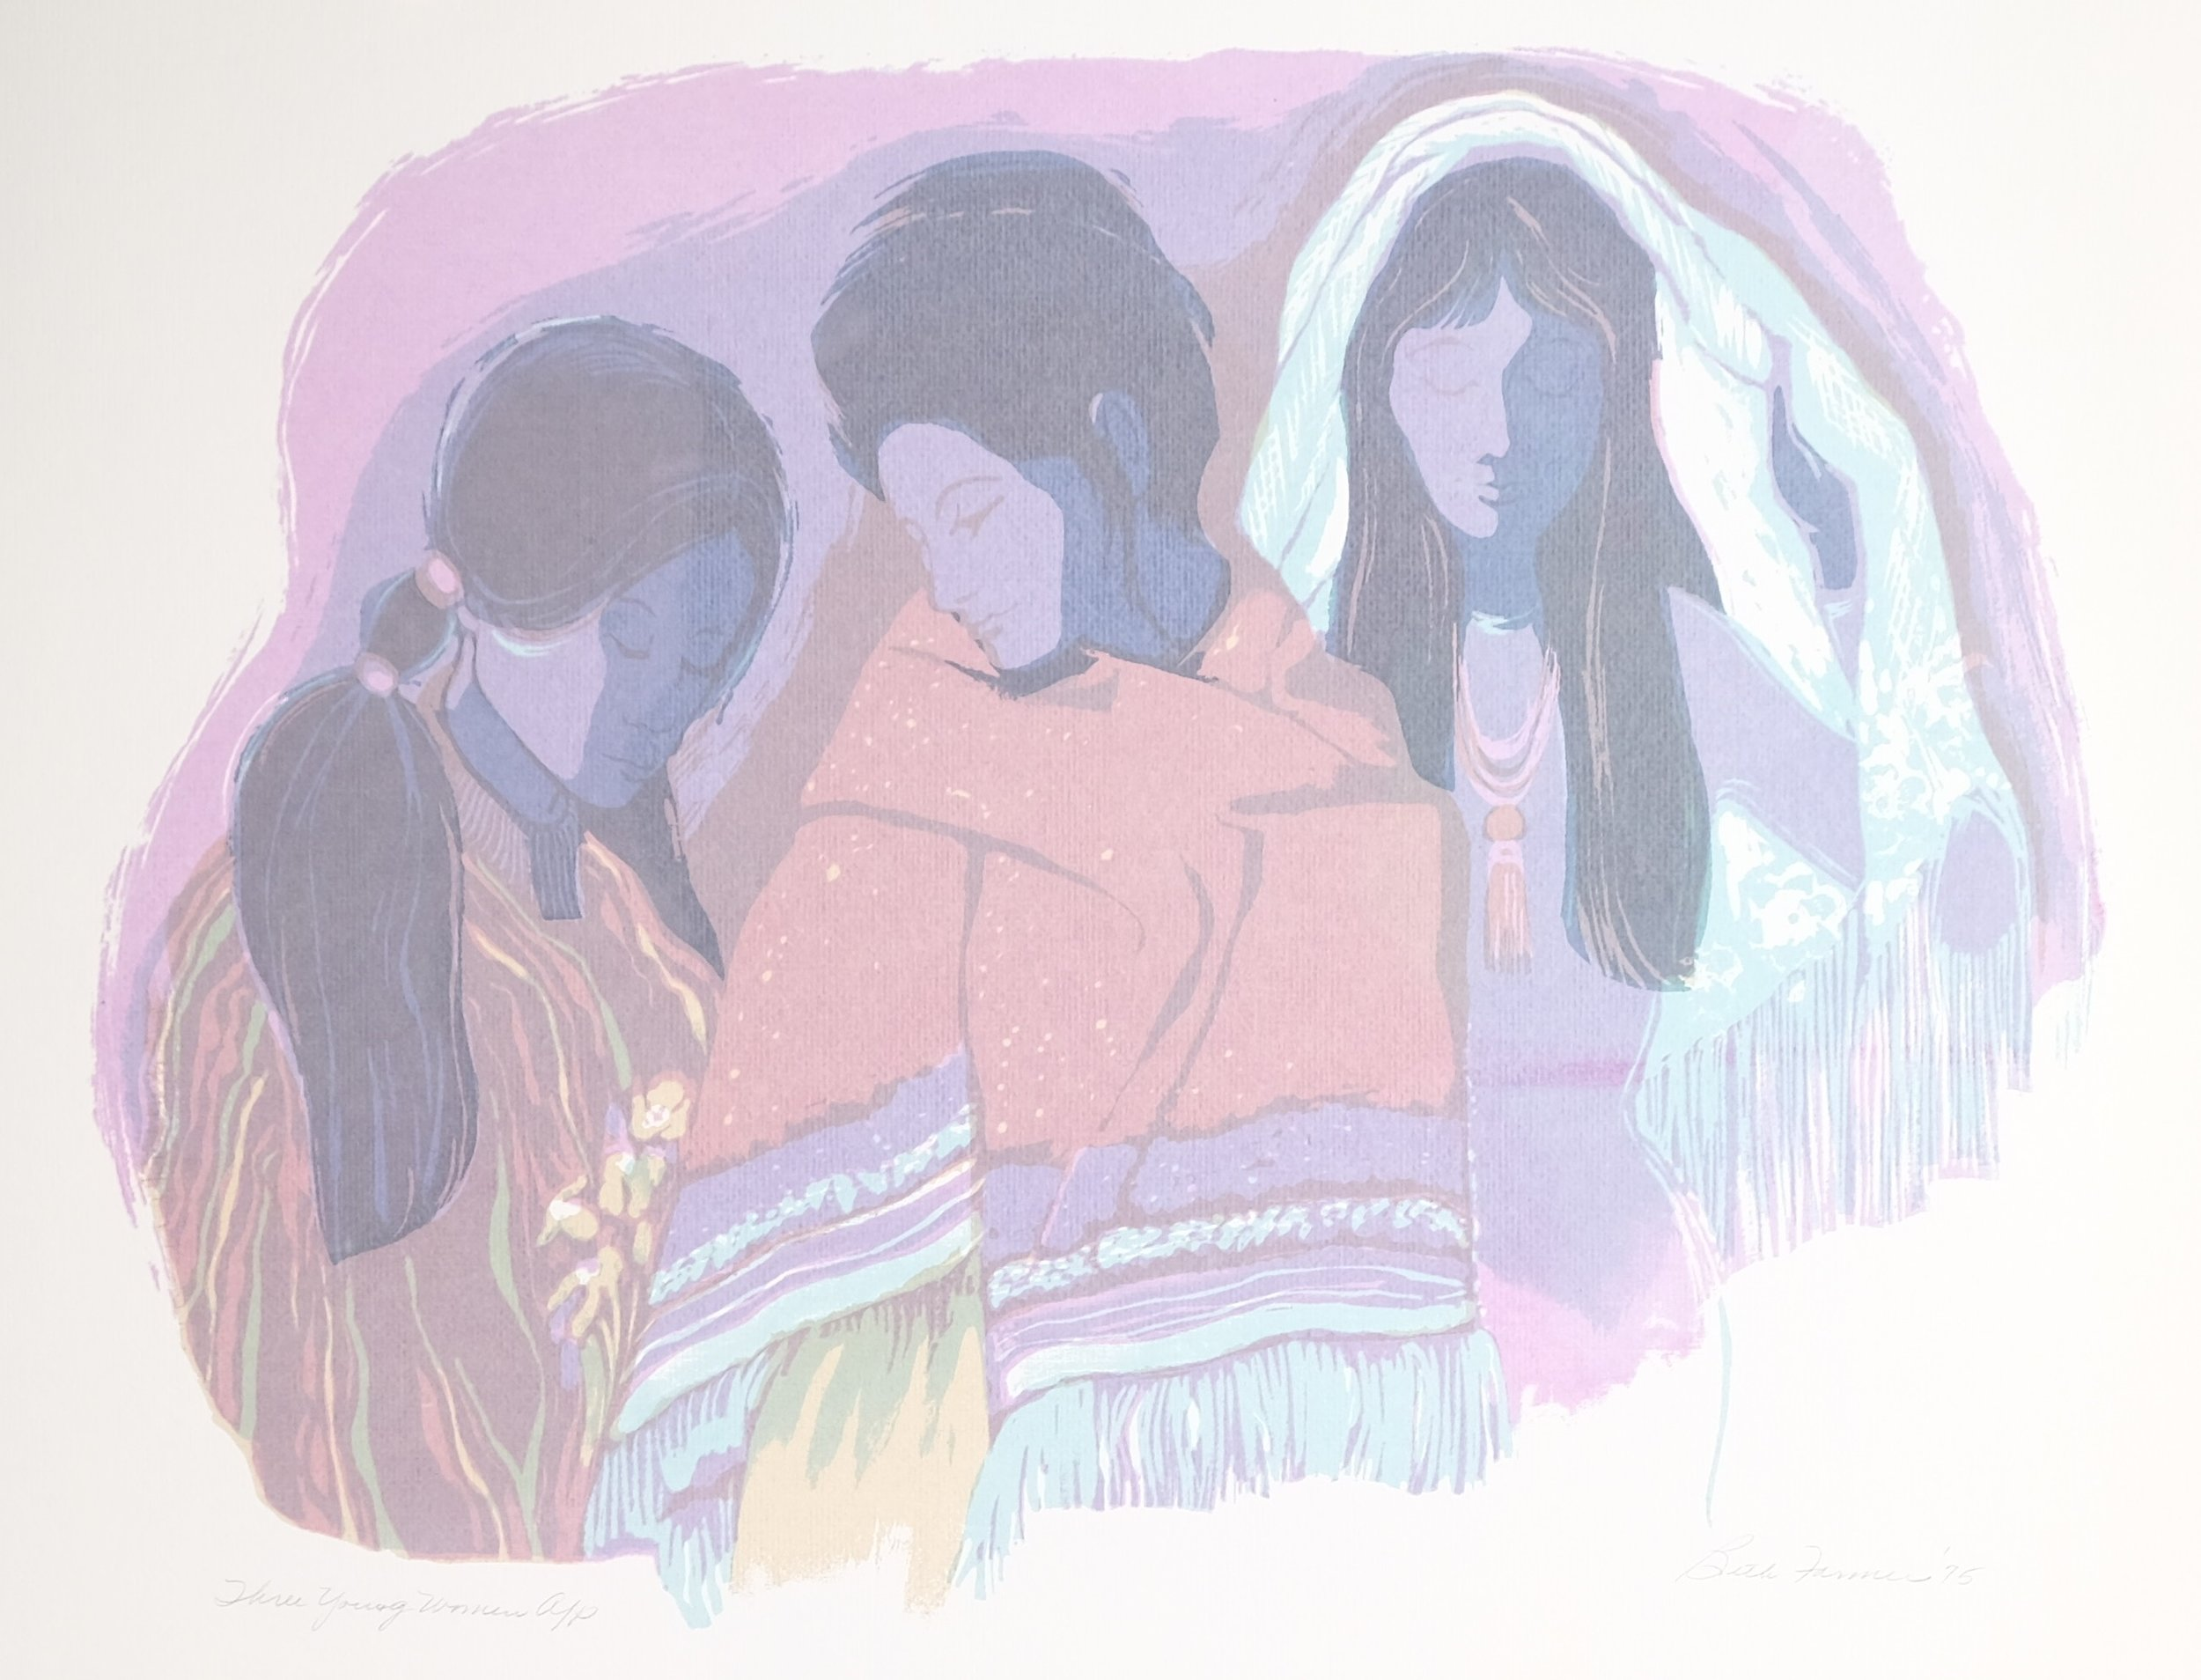 Three Young Women, Lavendar, $175